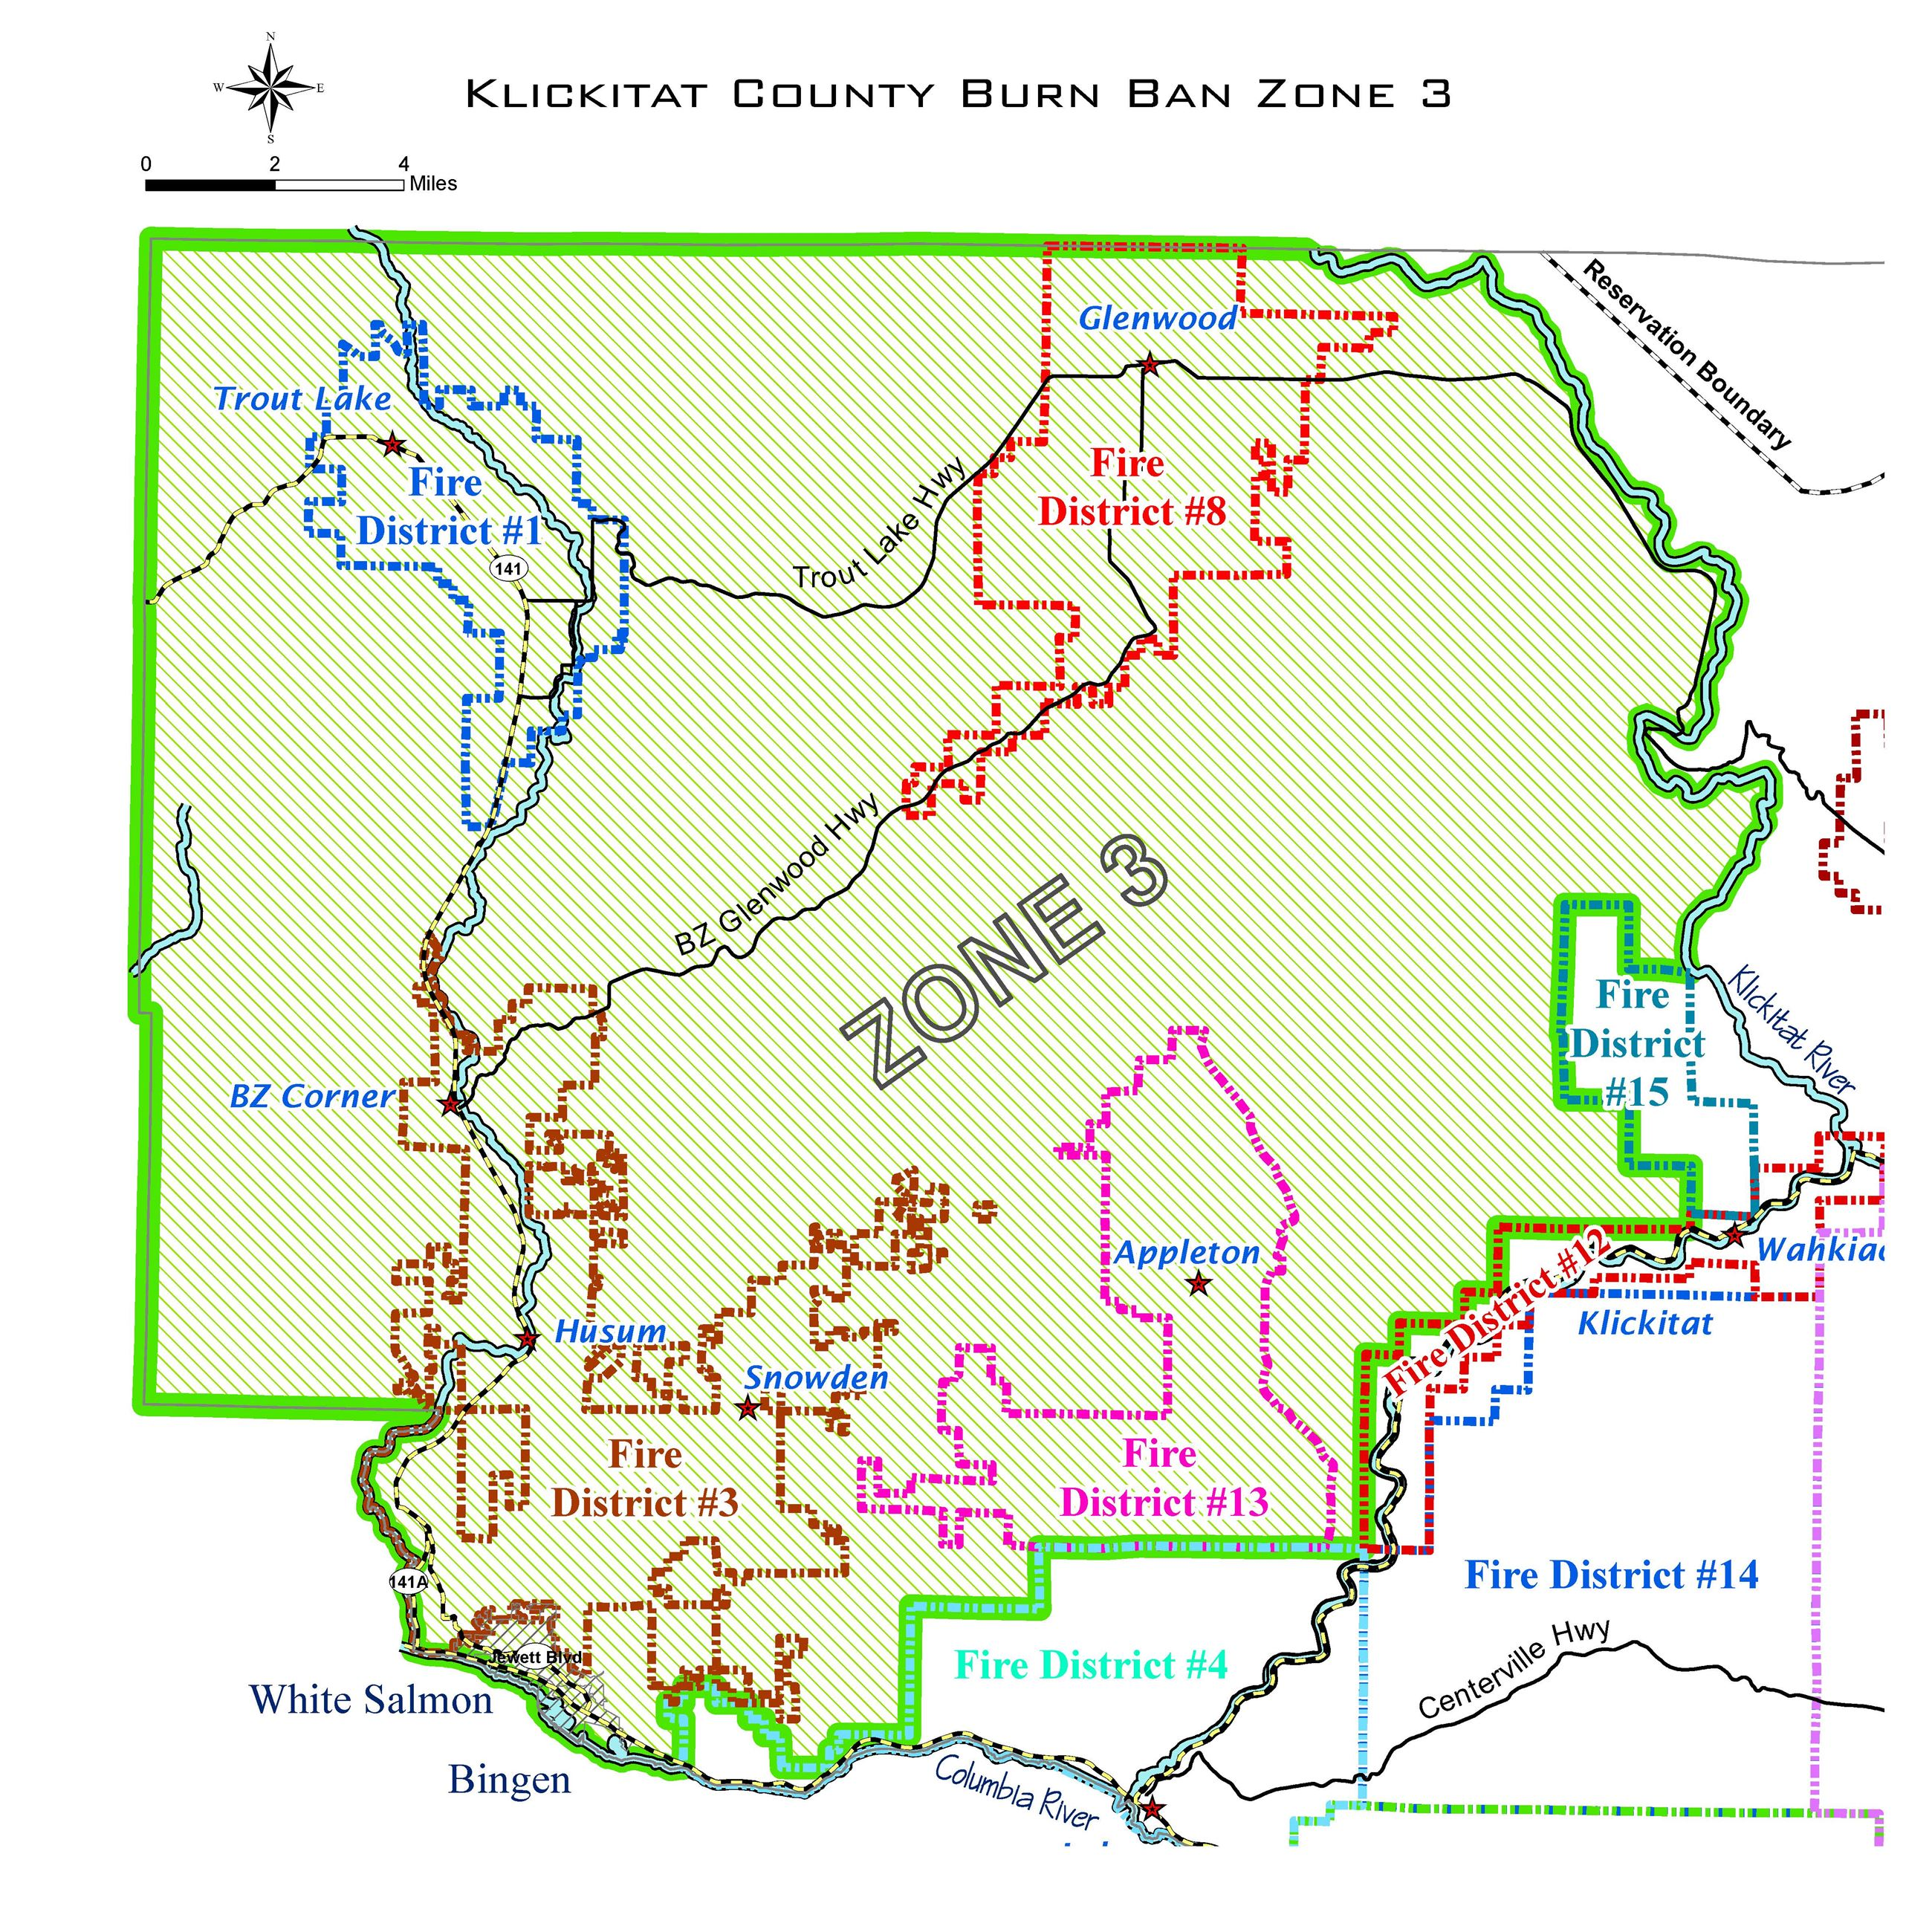 County Burn Ban Zone 3 Map